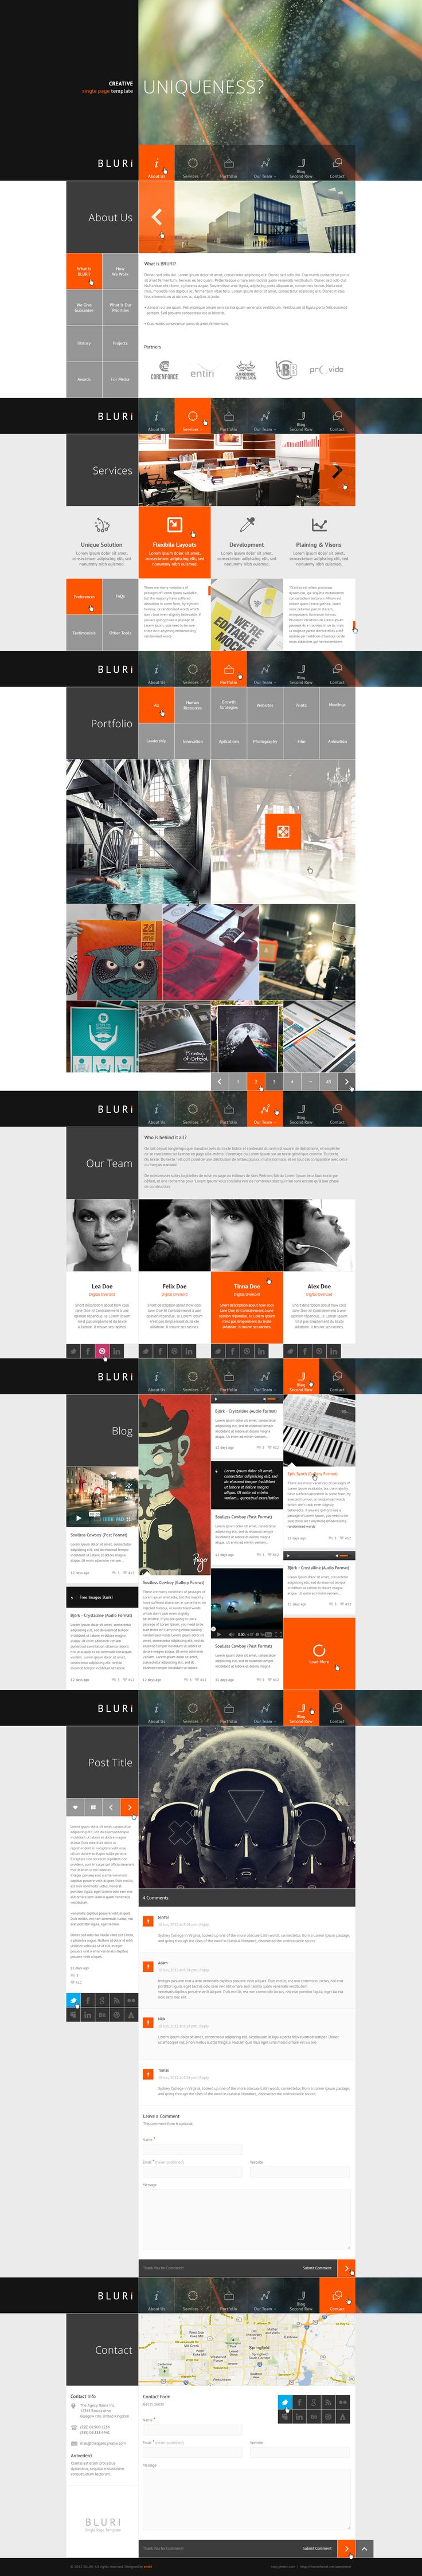 http://themeforest.net/item/bluri-single-page-template/3882654?ref=designmedosadvert